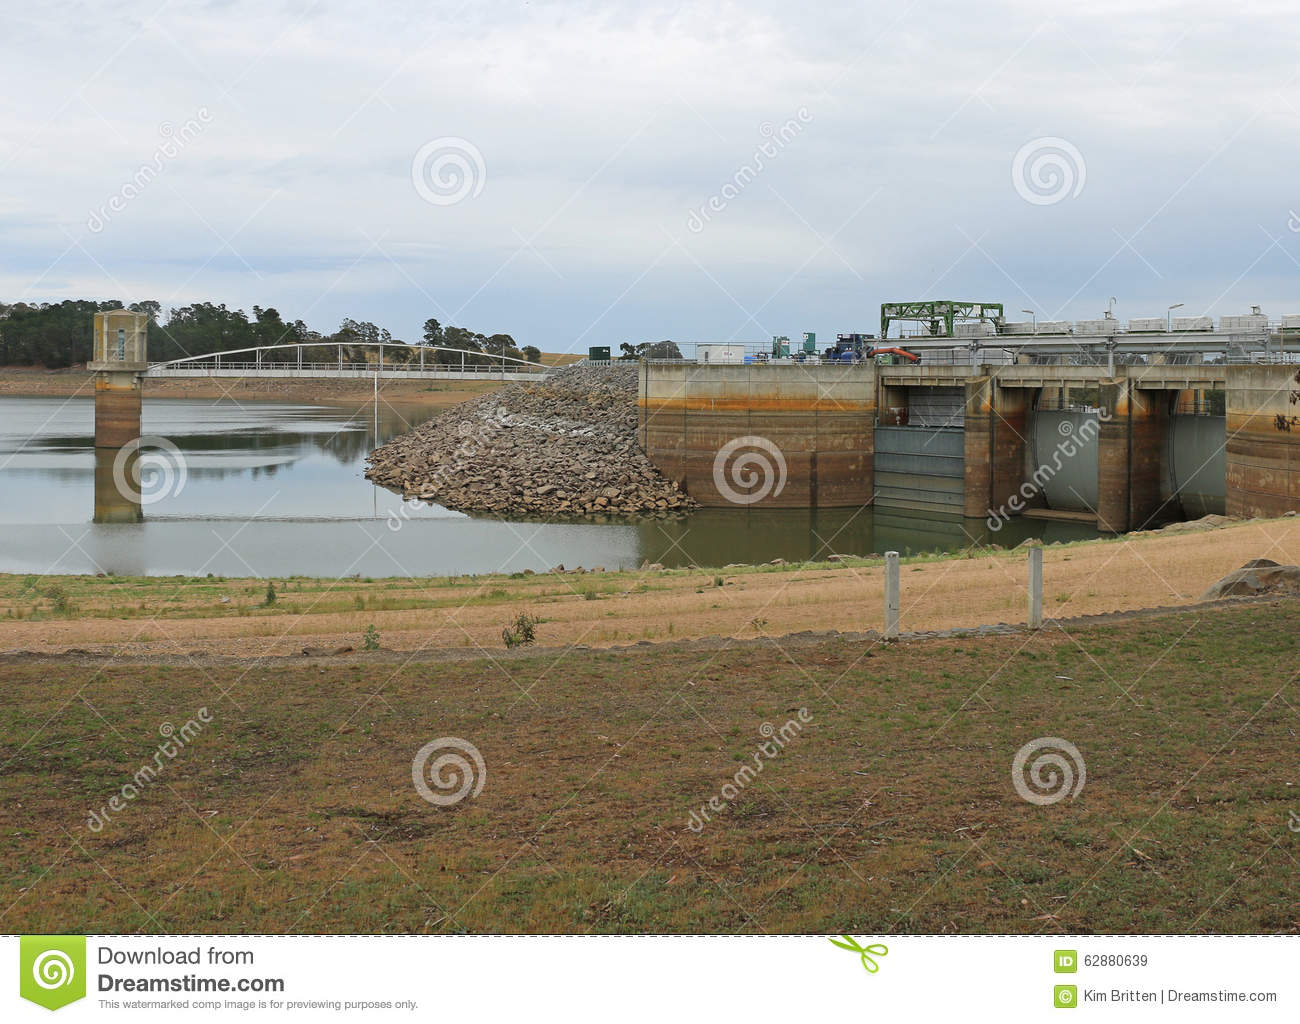 Located at Baringhup in Victoria is Cairn Curran Reservoir s intake tower, bridge and primary storage spillway